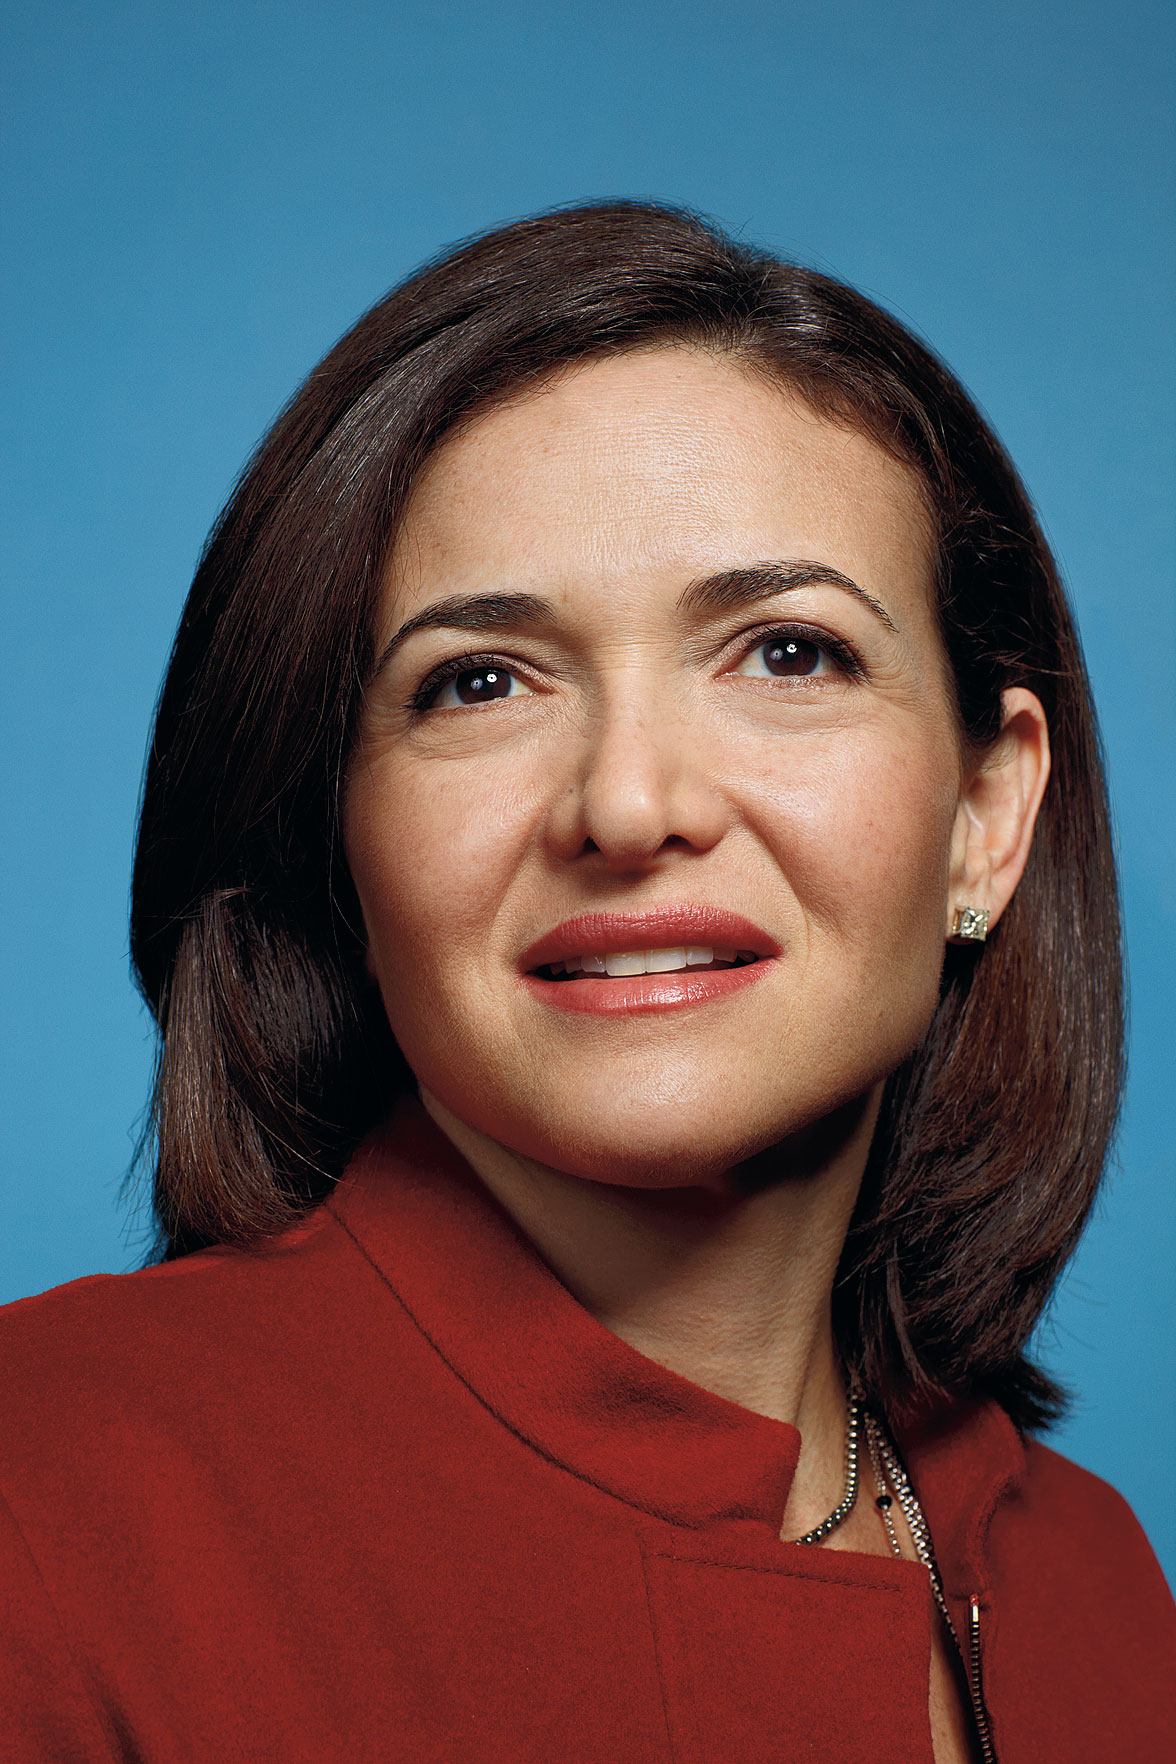 Sheryl Sandberg, photographed at home, august 2009